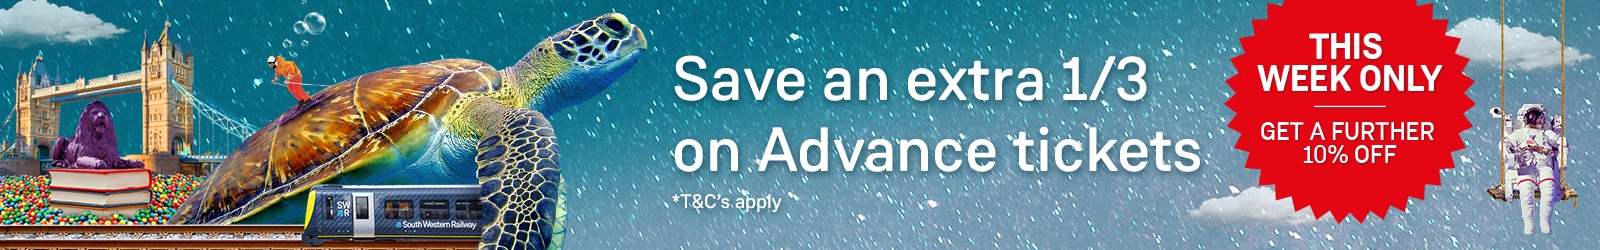 Save an extra third on Advance tickets South Western Railway